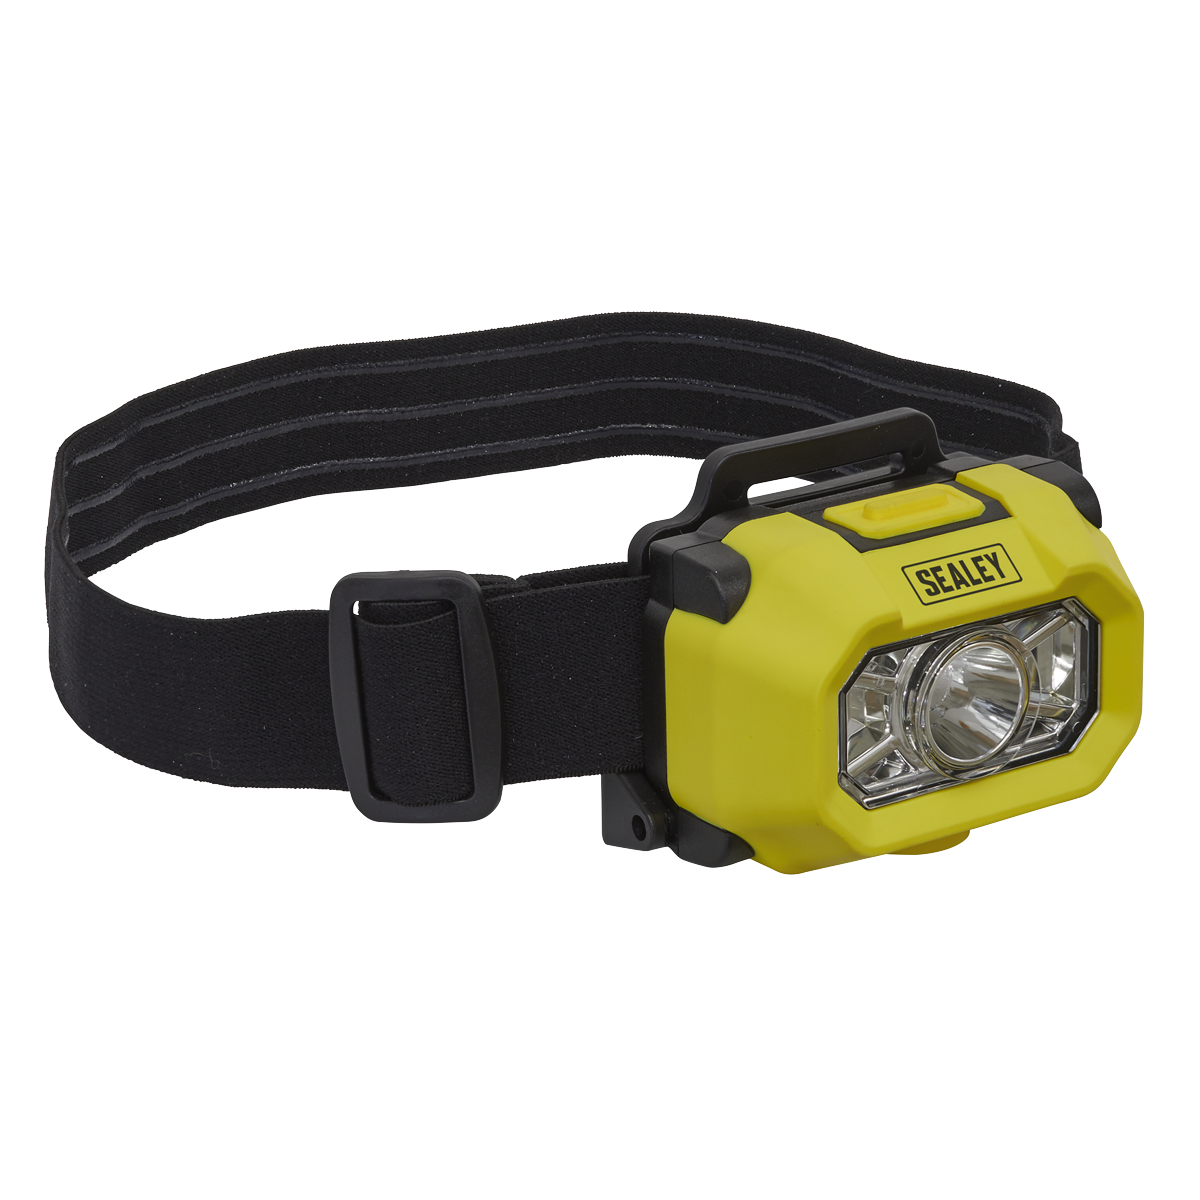 Head Torch XP-G2 CREE LED Intrinsically Safe ATEX/IECEx Approved